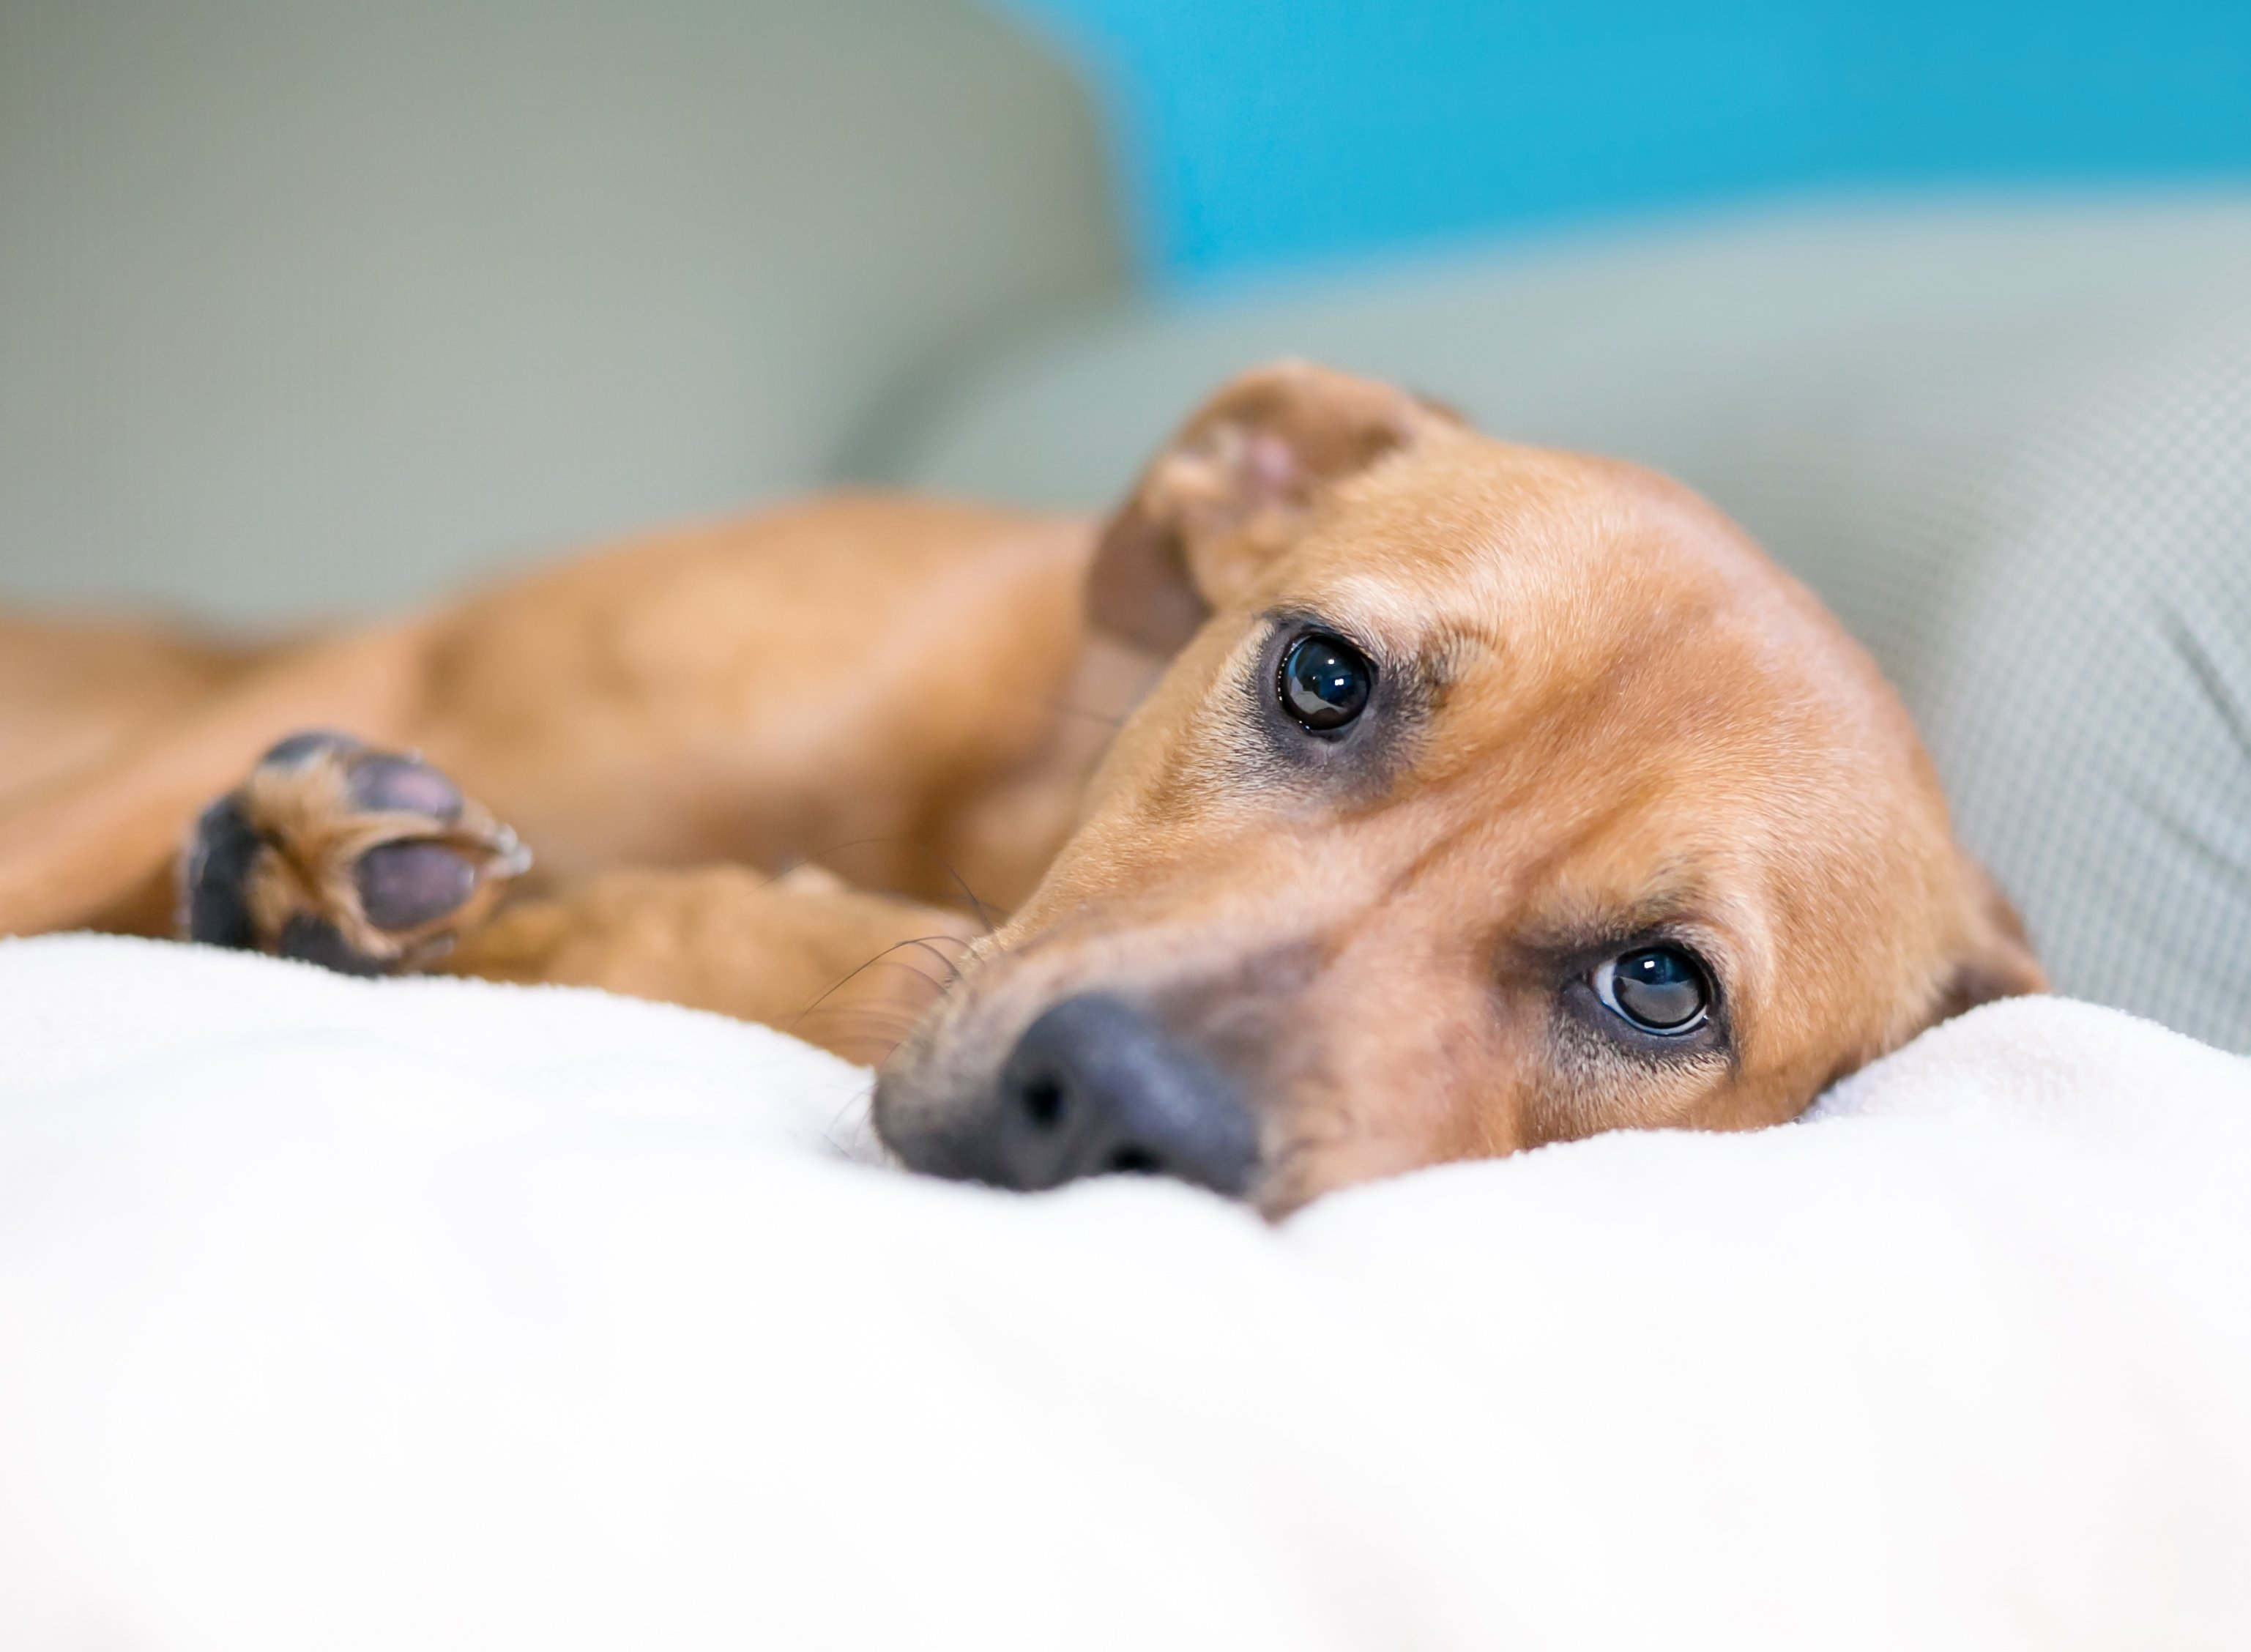 A dog with a sad expression lying on a couch   Photo: Shutterstock/Mary Swift